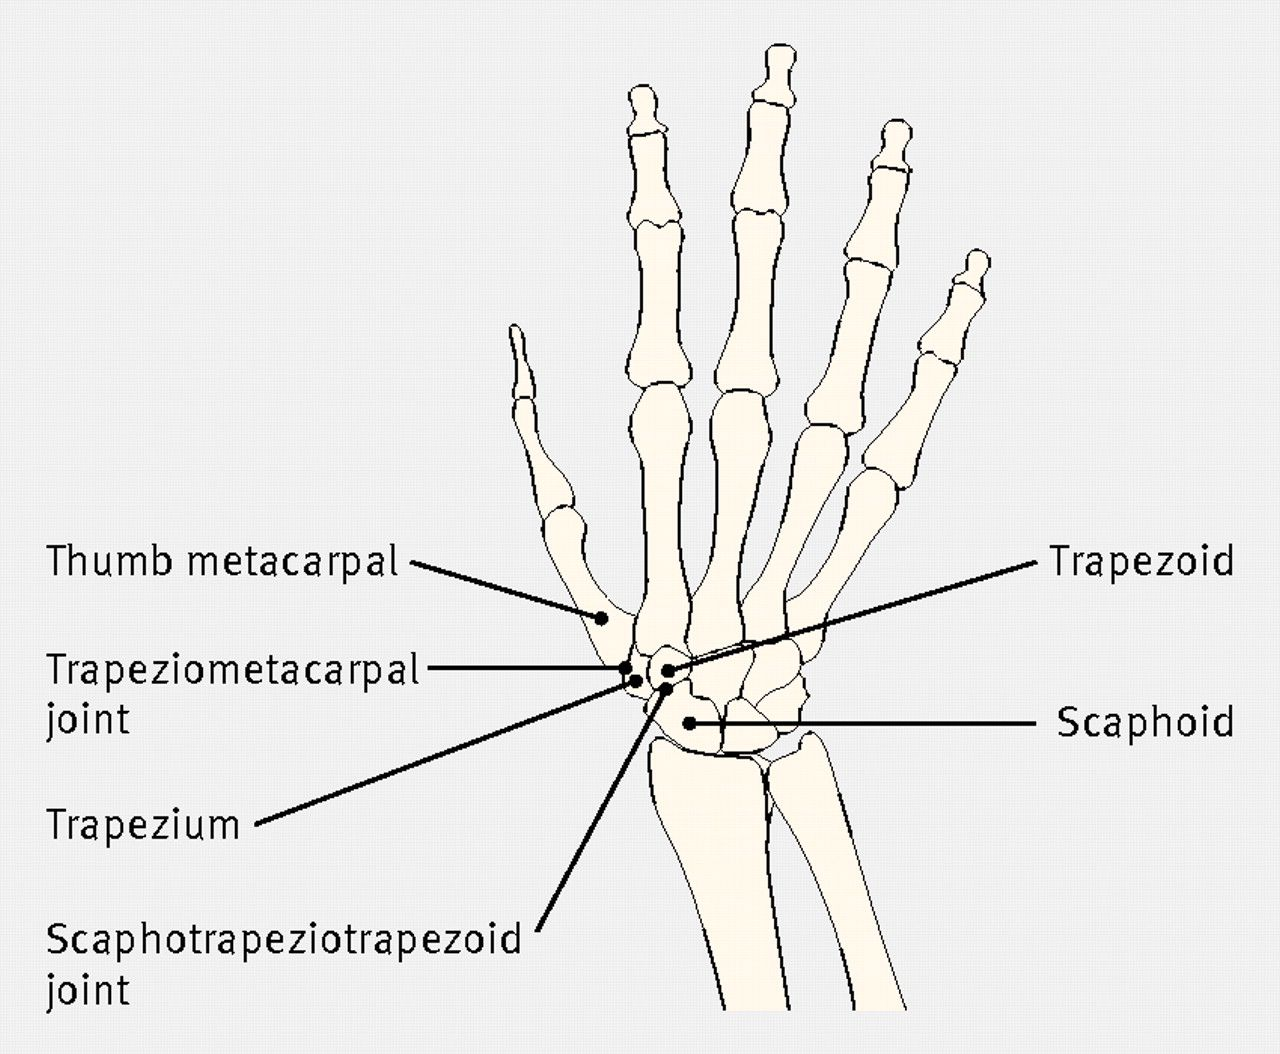 diagram of the bones of the hand and carpus showing the trapeziometacarpal and scaphotrapeziotrapezoid joints where basal thumb arthritis occurs [ 1280 x 1054 Pixel ]